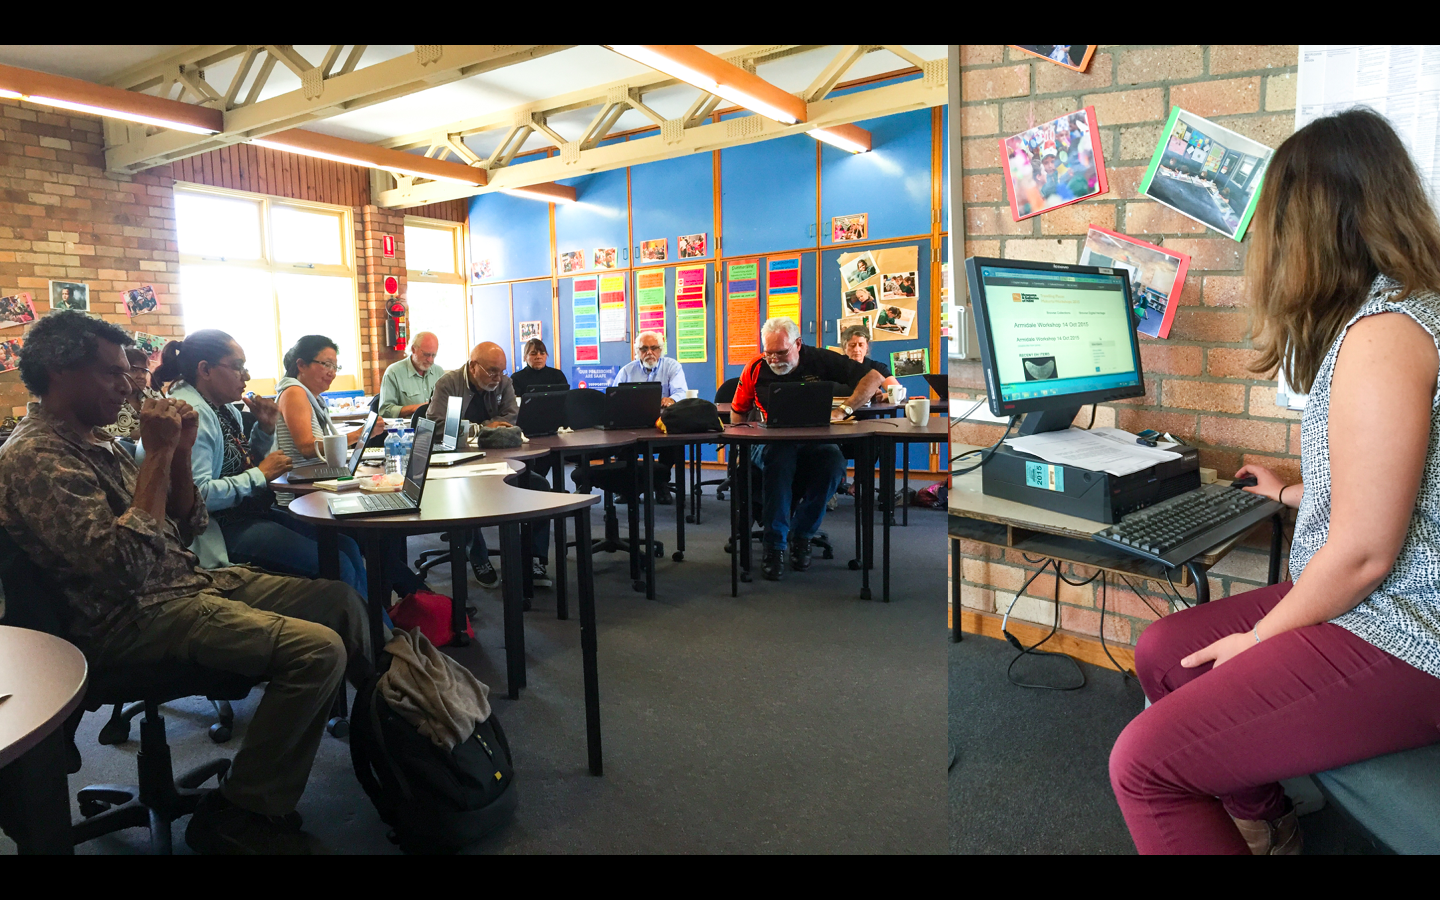 At a workshop in Armidale, New South Wales, Australia